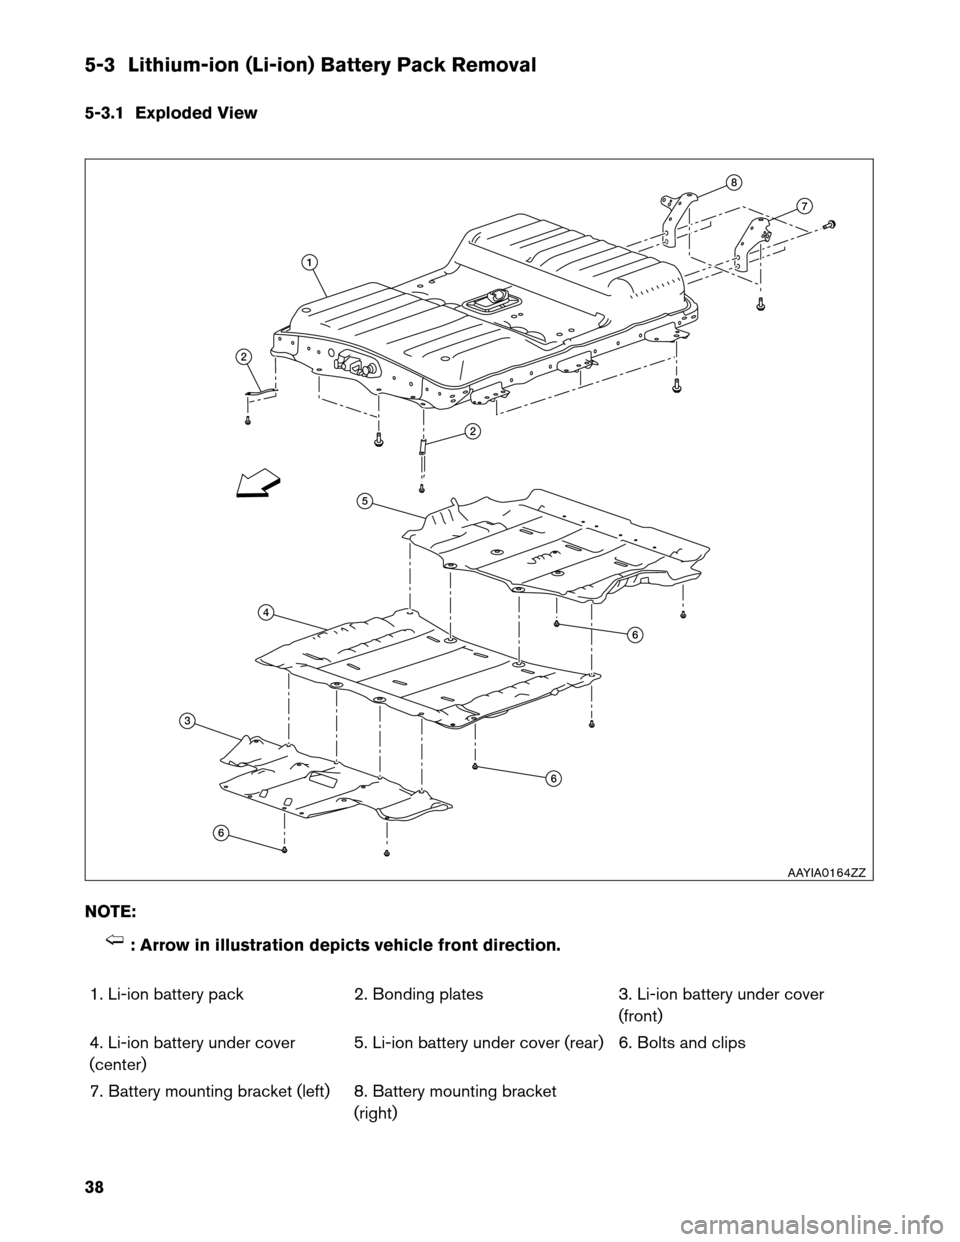 NISSAN LEAF 2013 1.G Dismantling Guide 5-3 Lithium-ion (Li-ion) Battery Pack Removal 5-3.1 Exploded View NOTE: : Arrow in illustration depicts vehicle front direction. 1.  Li-ion battery pack 2. Bonding plates 3. Li-ion battery under cover